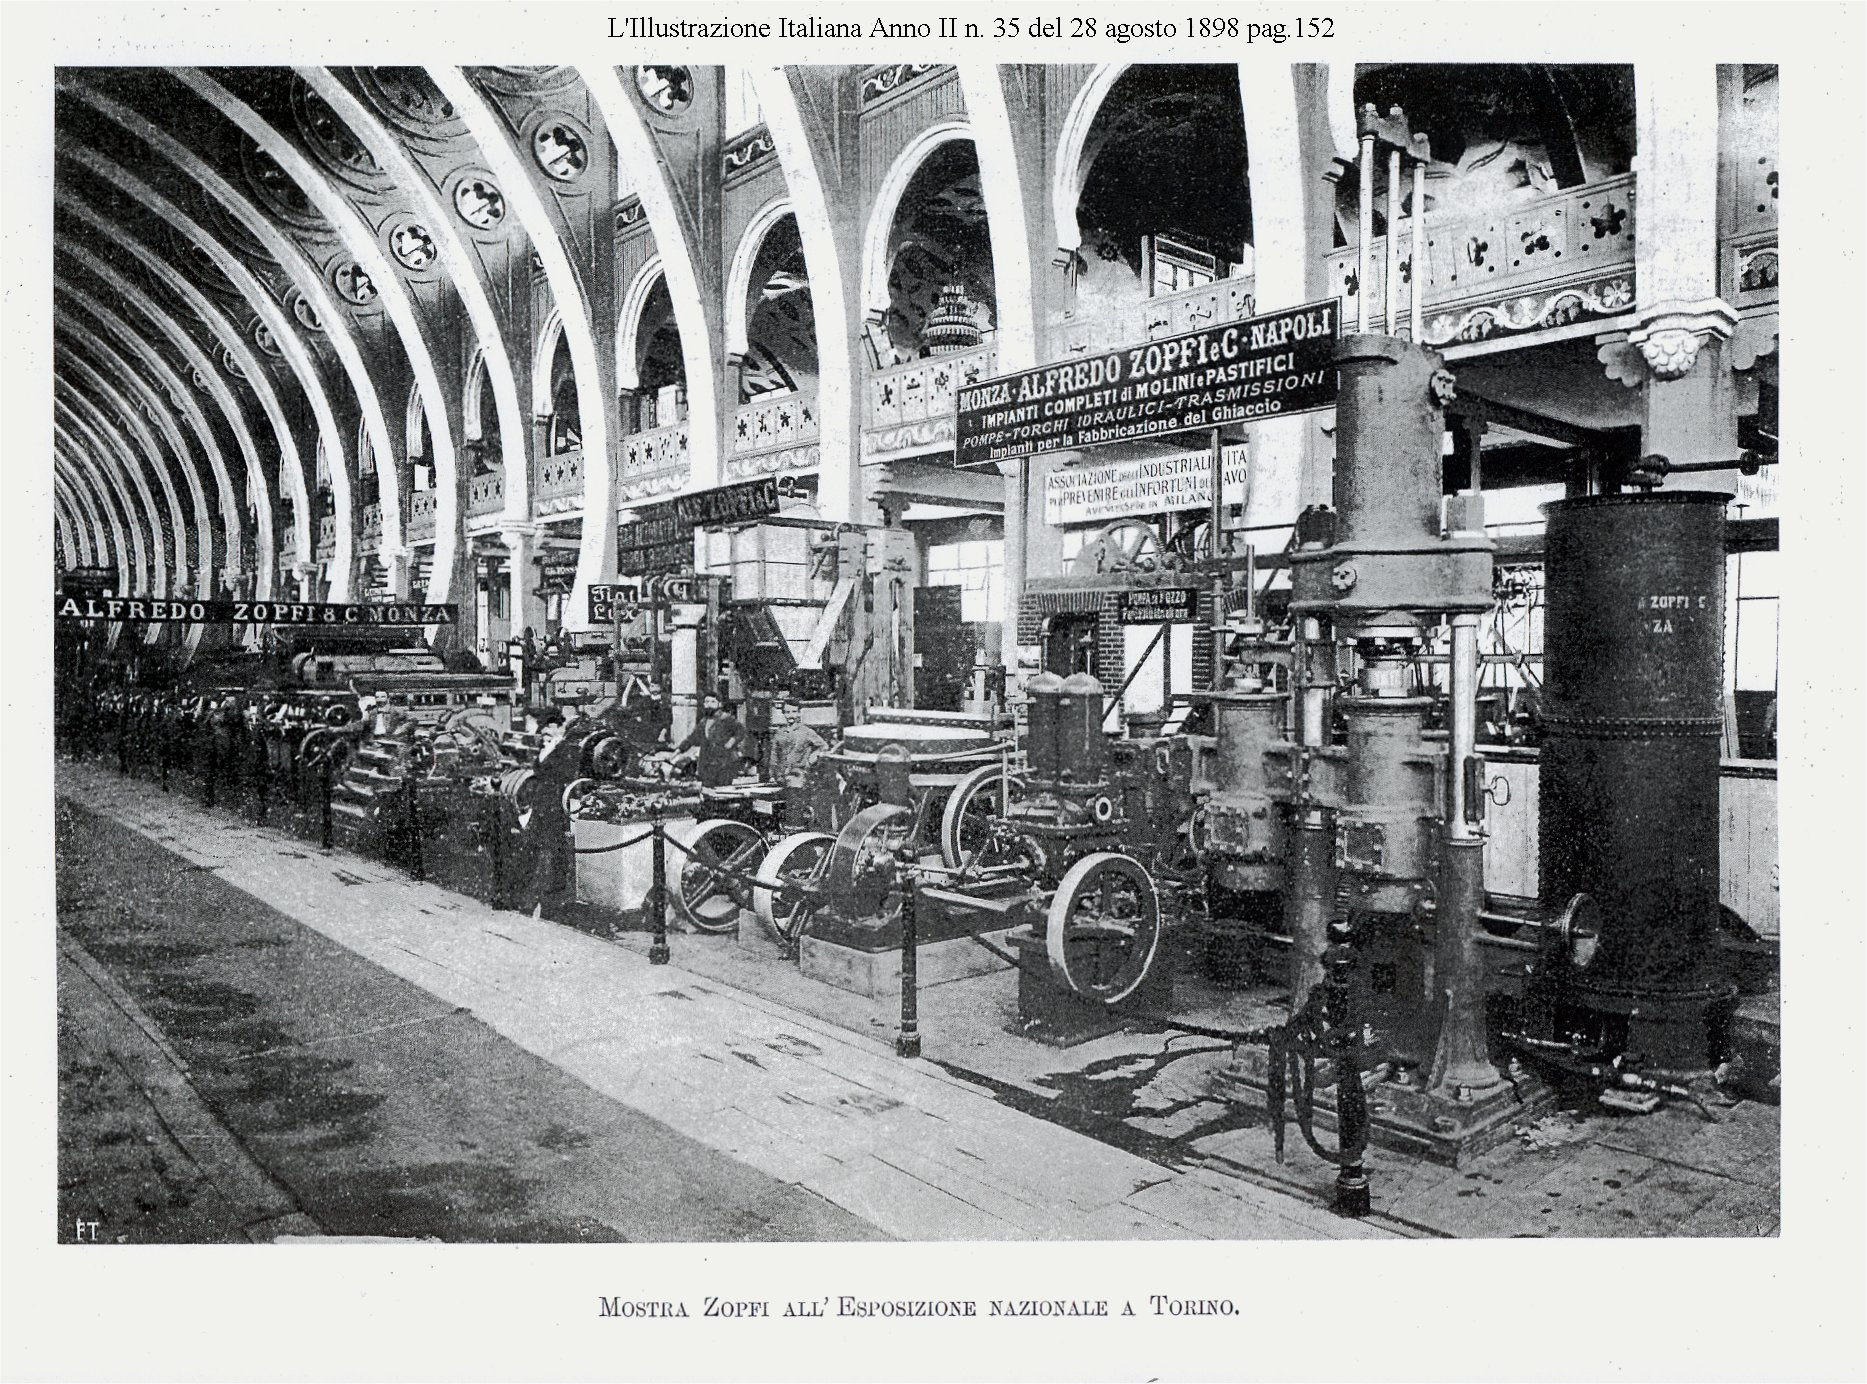 File:1898-illustraz-italiana-officina-Zopfi-pag-152-